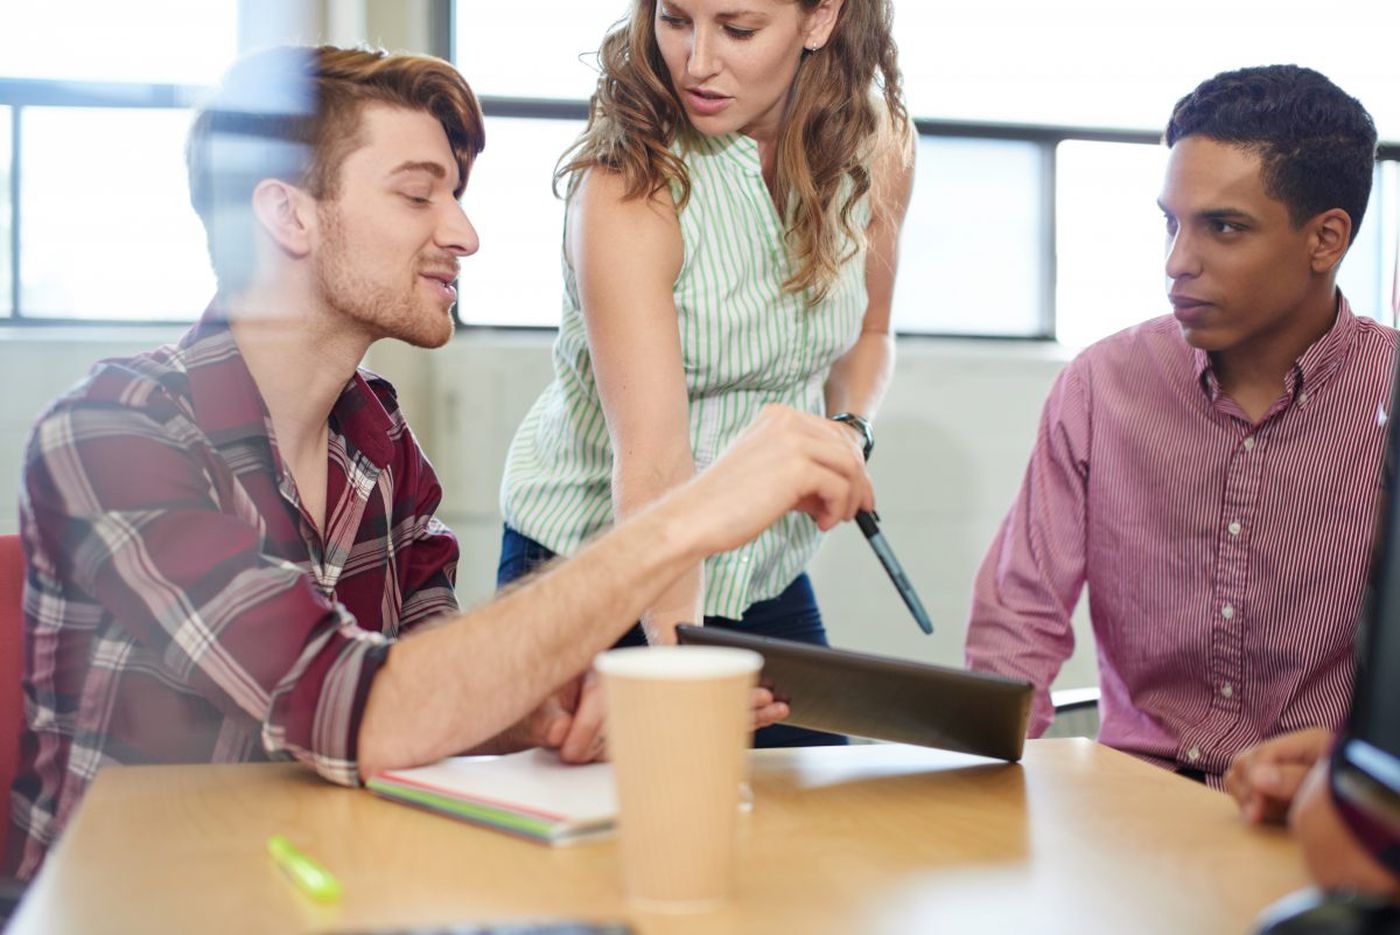 Unwrapping the bad rap on millennial workers